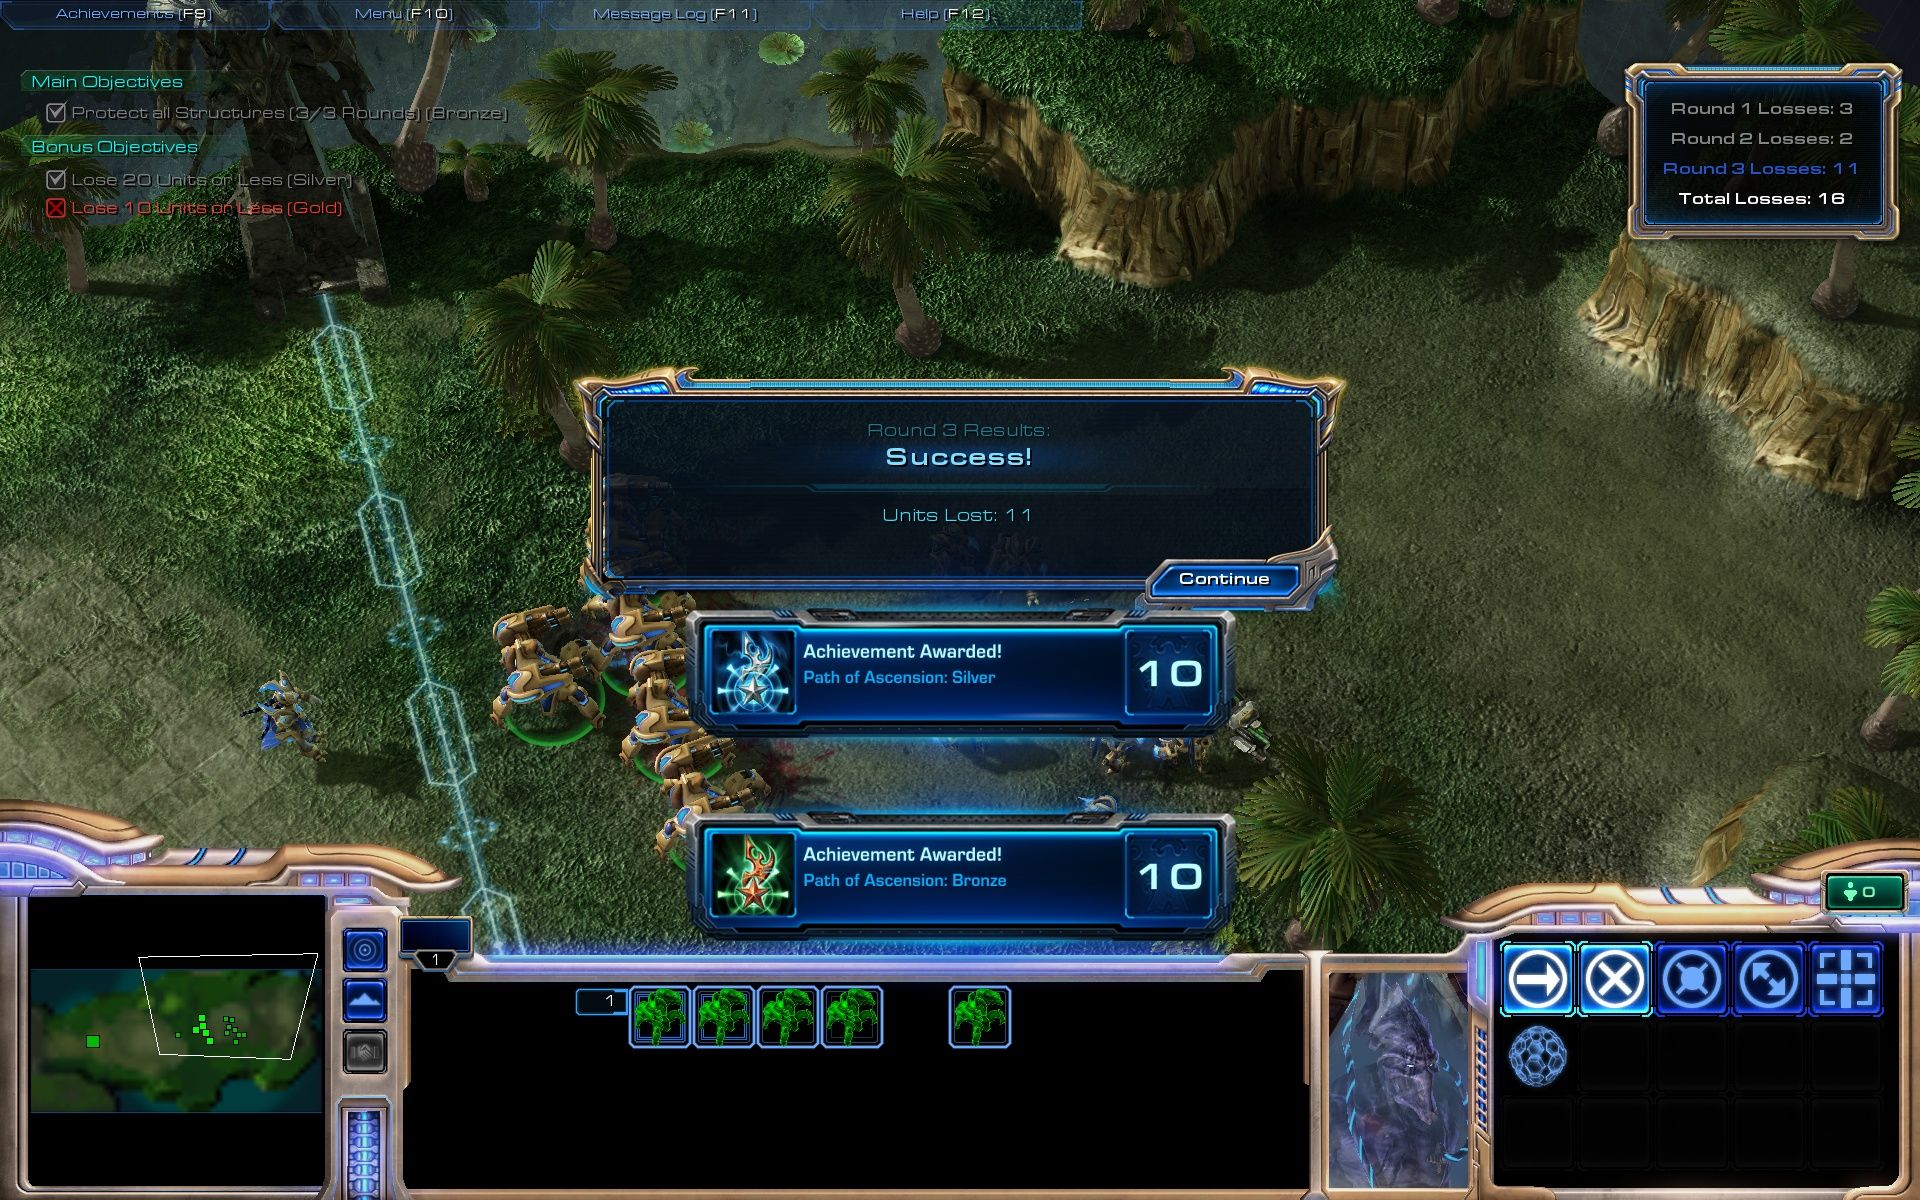 StarCraft II: Wings of Liberty Windows Challenges: earned two achievements - but not the gold medal :(.